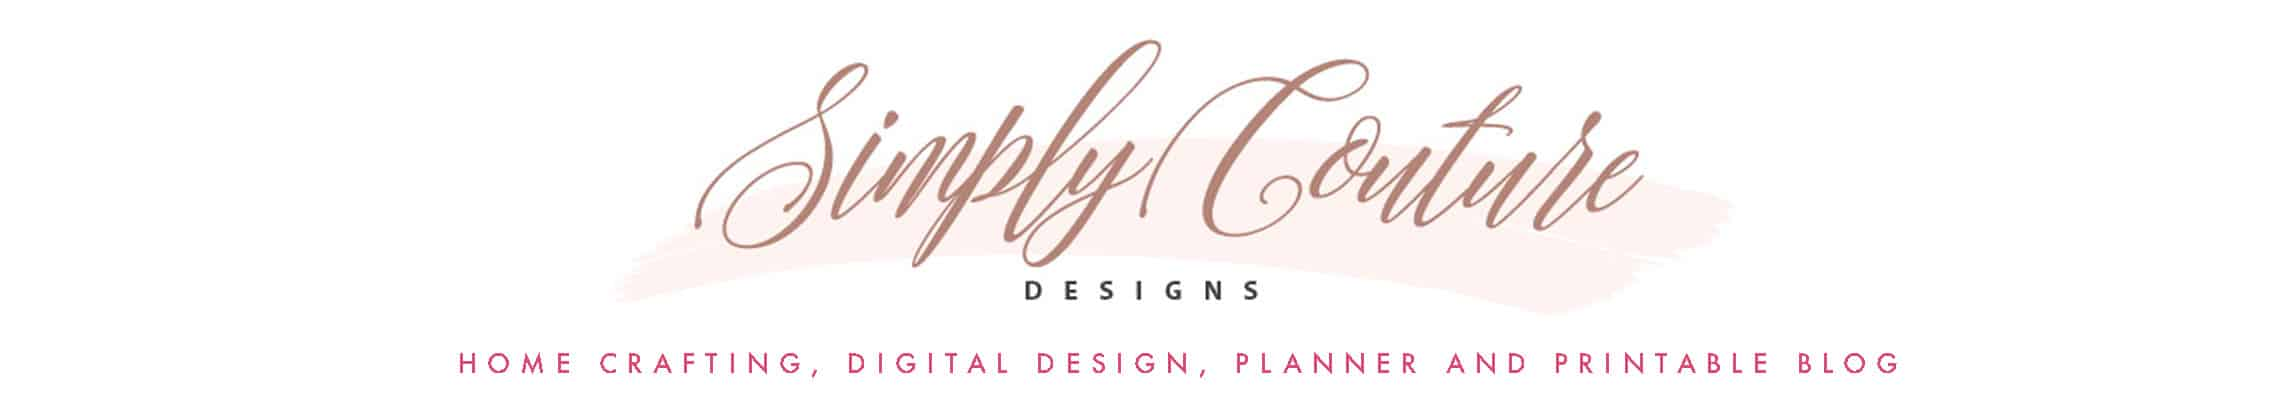 SimplyCoutureDesignsBanner